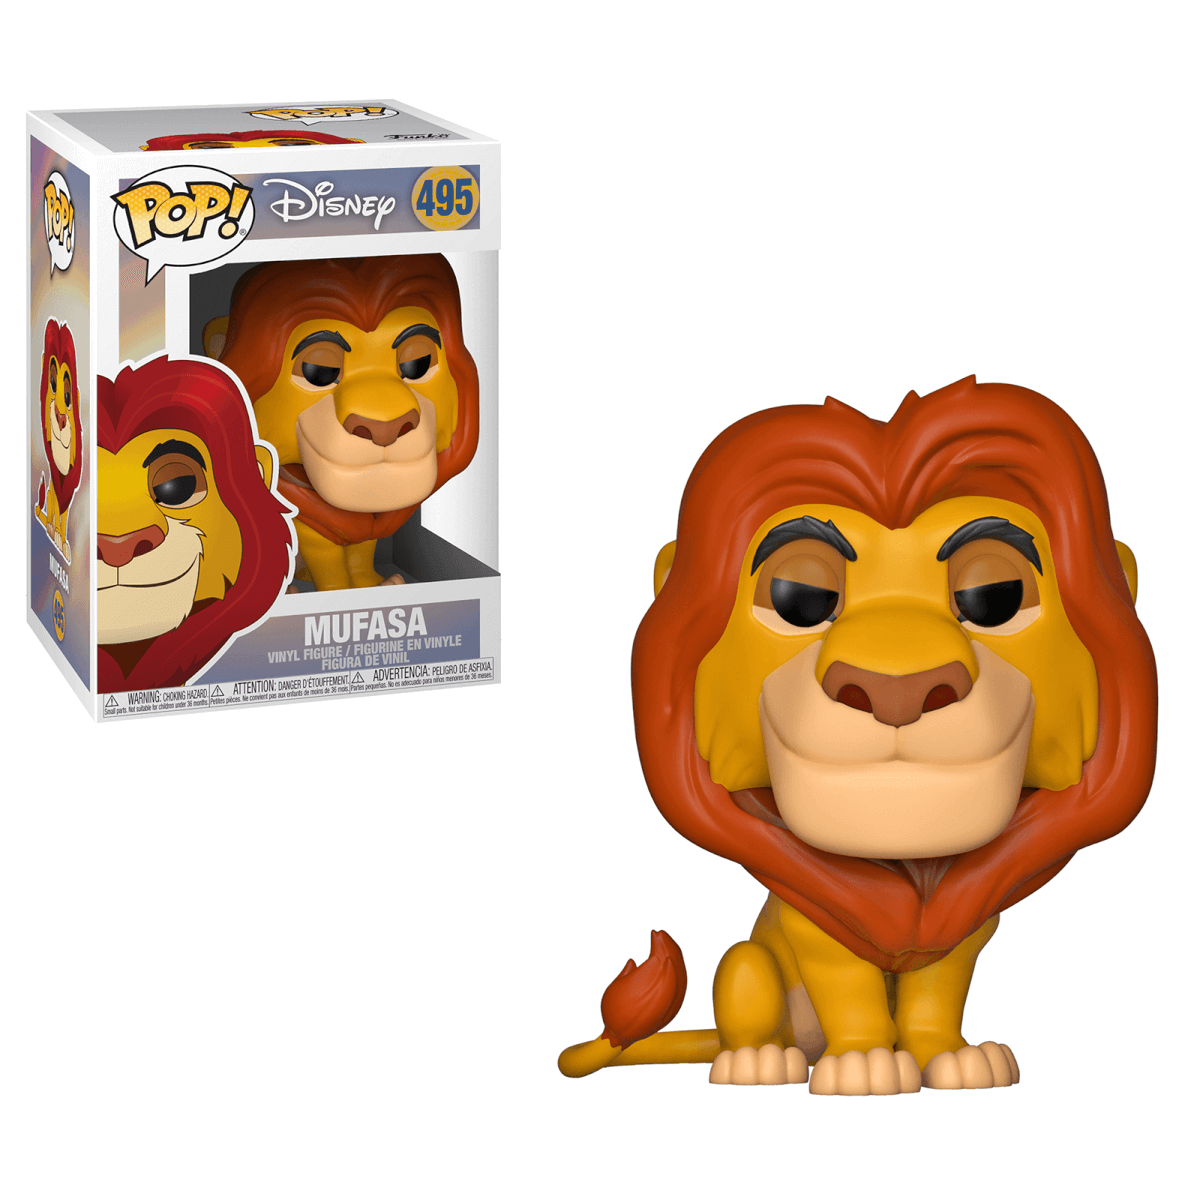 Funko Pop Disney The Lion King Mufasa The Entertainer